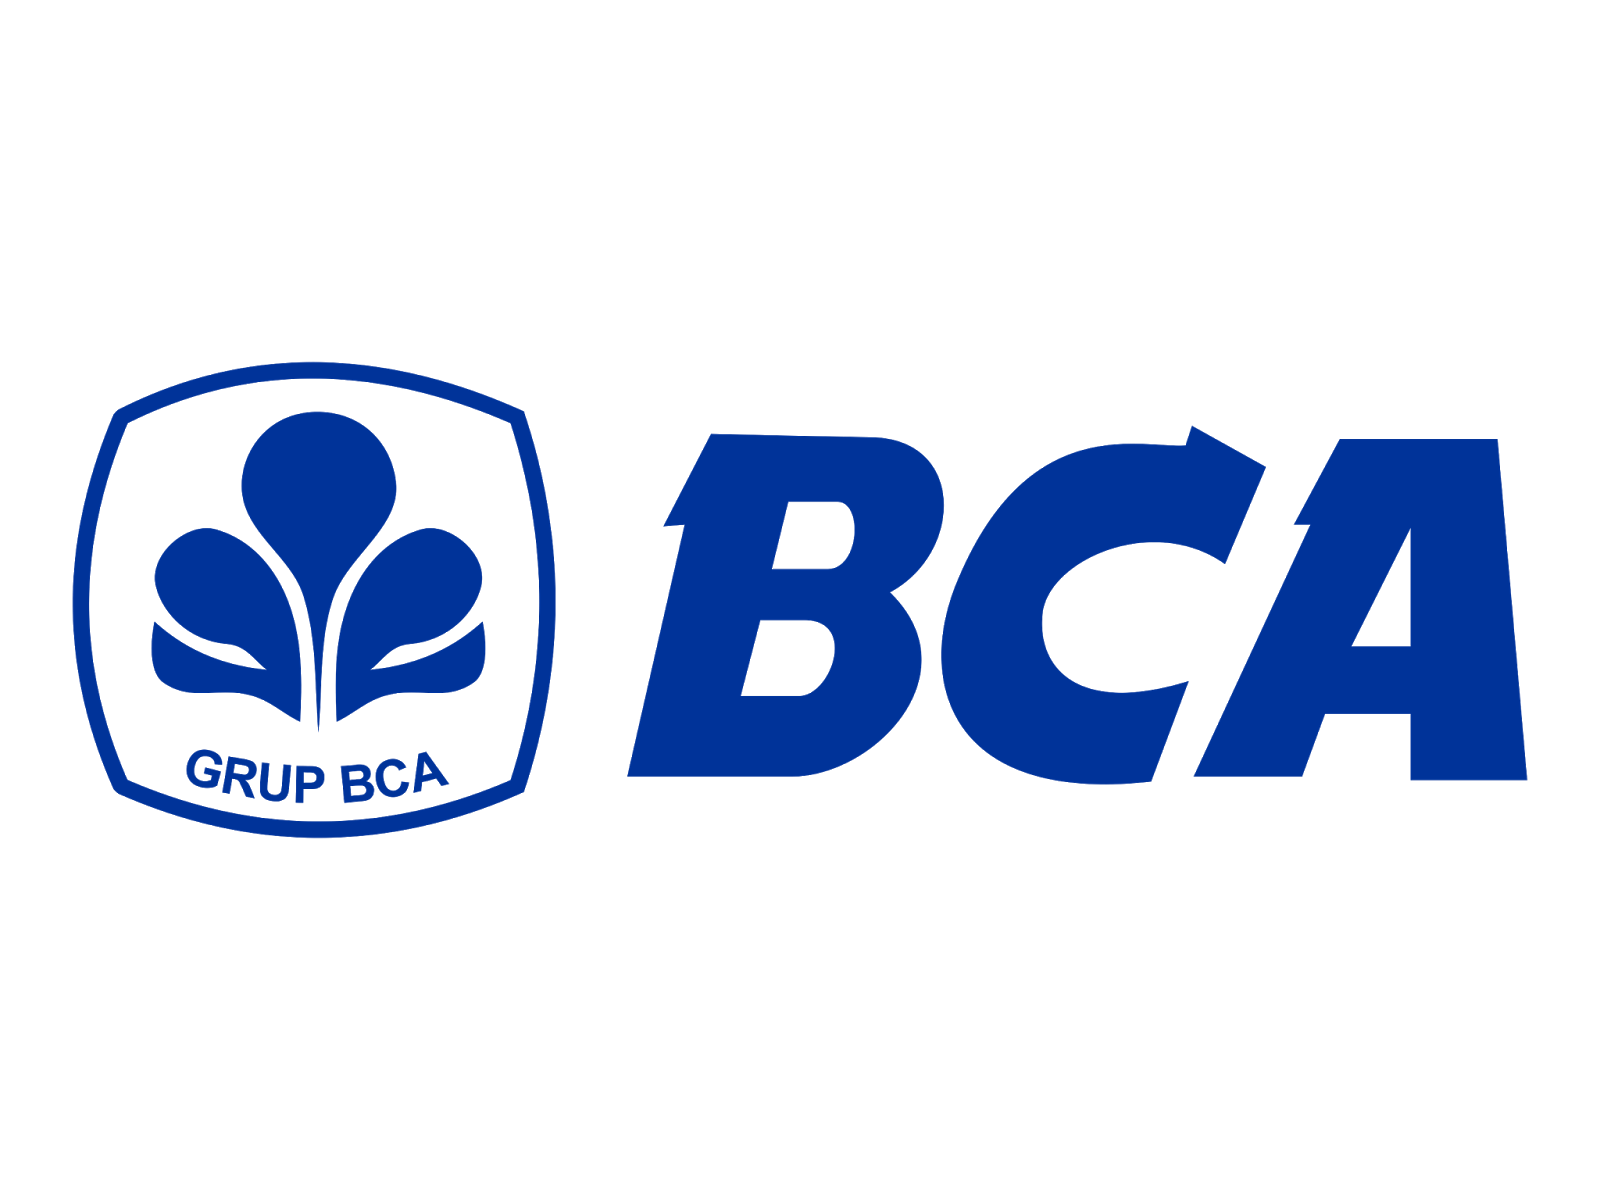 Logo BCA PNG images, Bank Central Asia - Bank Bca Logos Free Download - Free Transparent PNG Logos